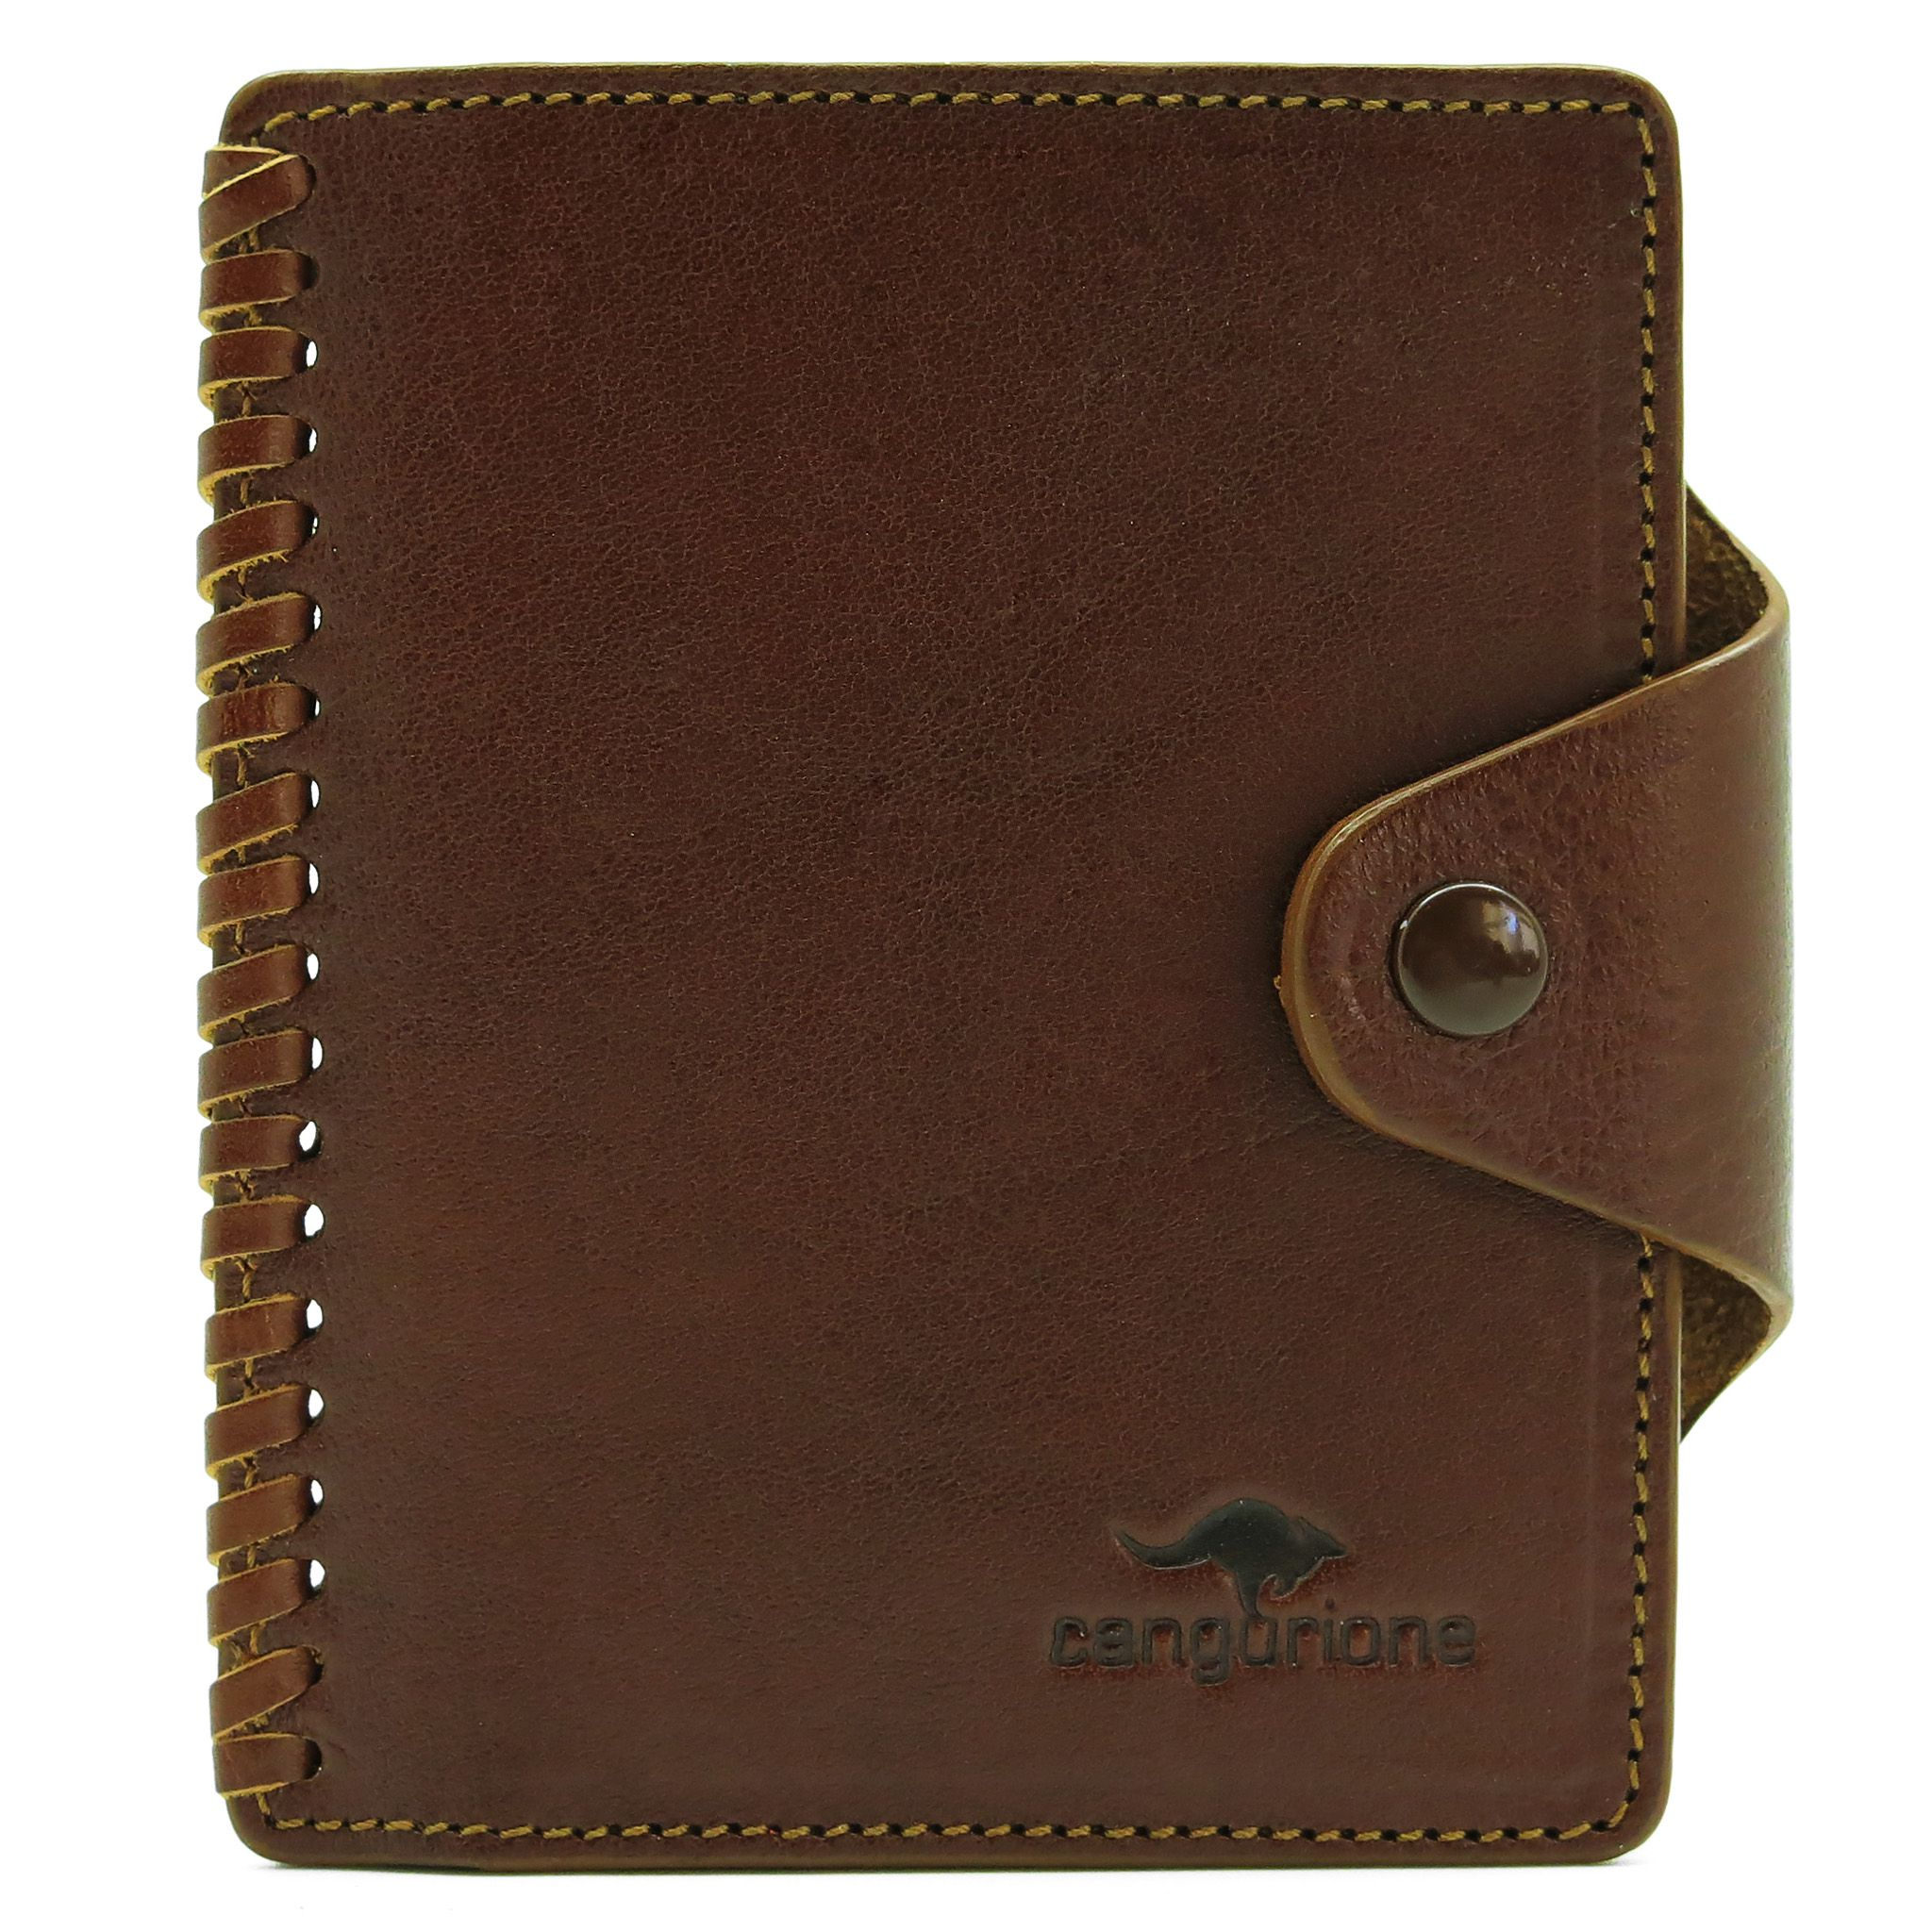 accessories leather brown handmade cardholder